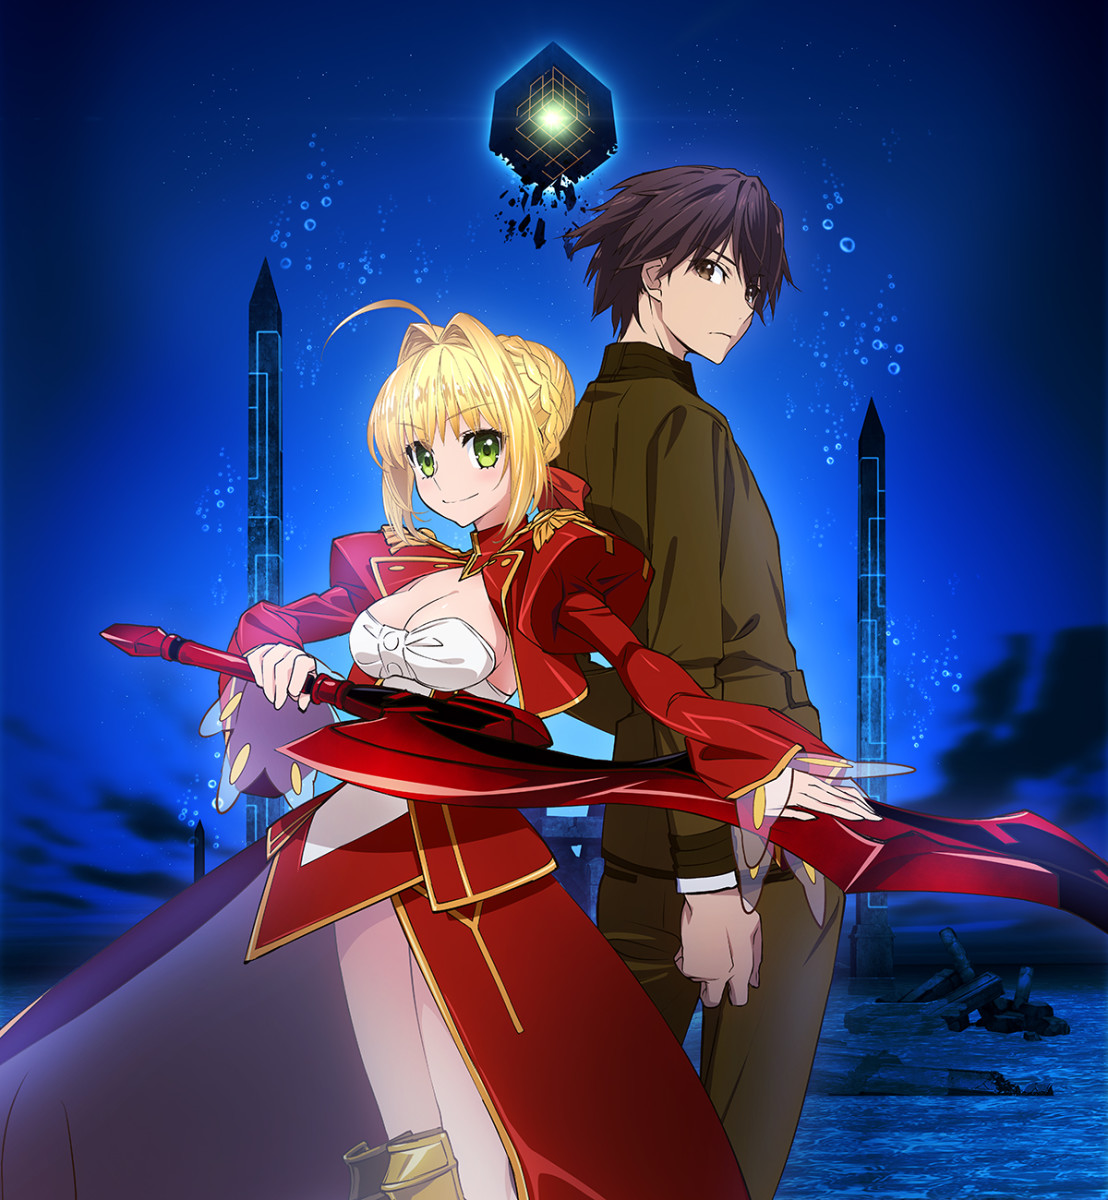 Anime Review: Fate/Extra: Last Encore (2018)